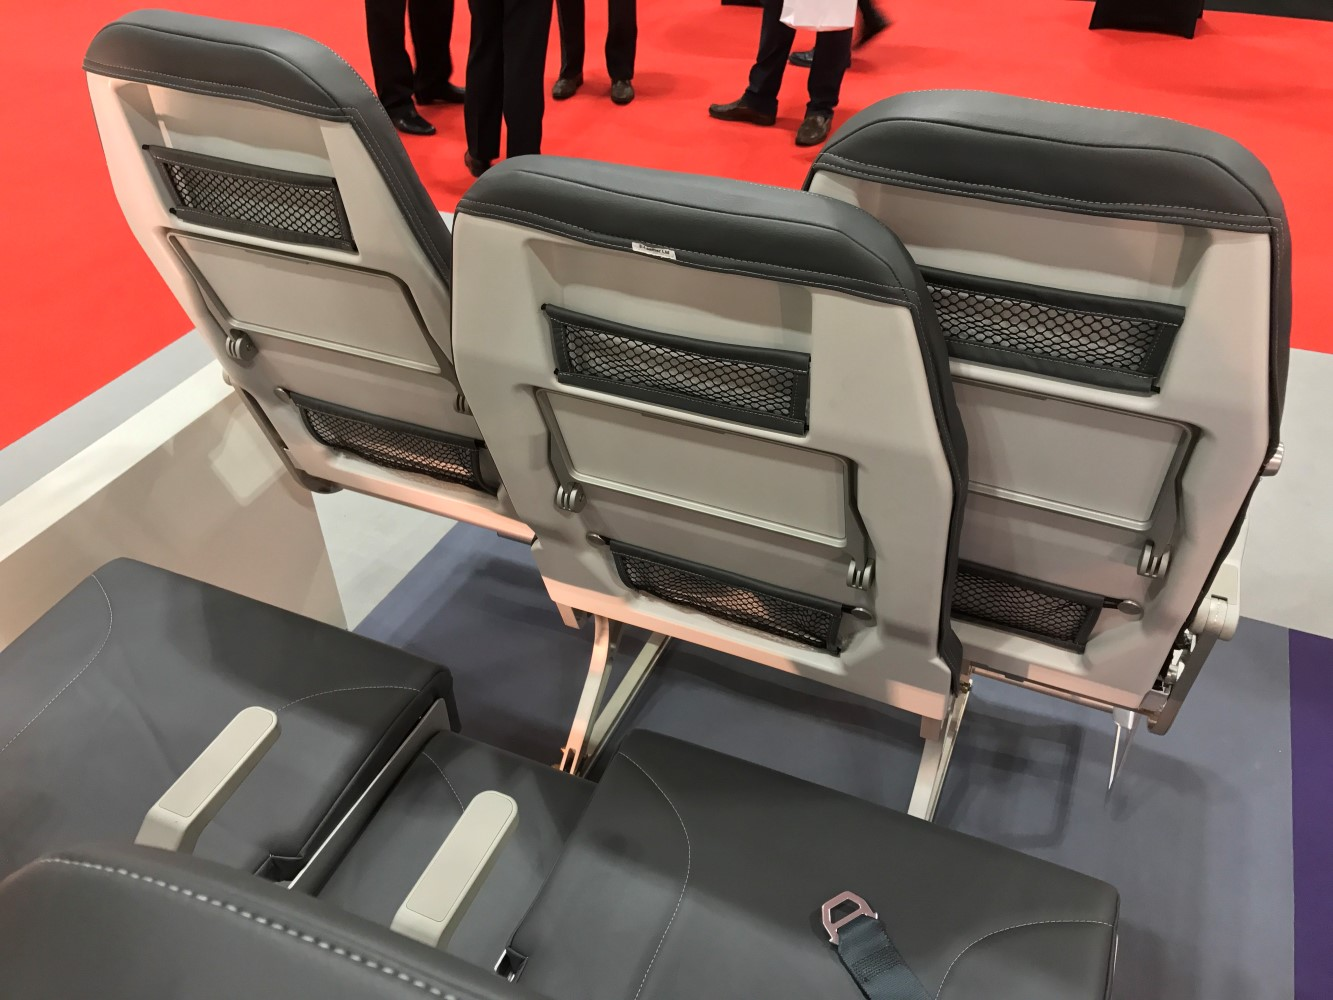 The stagger and wider centre seat backrest goes some way to giving the middle seat a bit of a boost. Image: John Walton